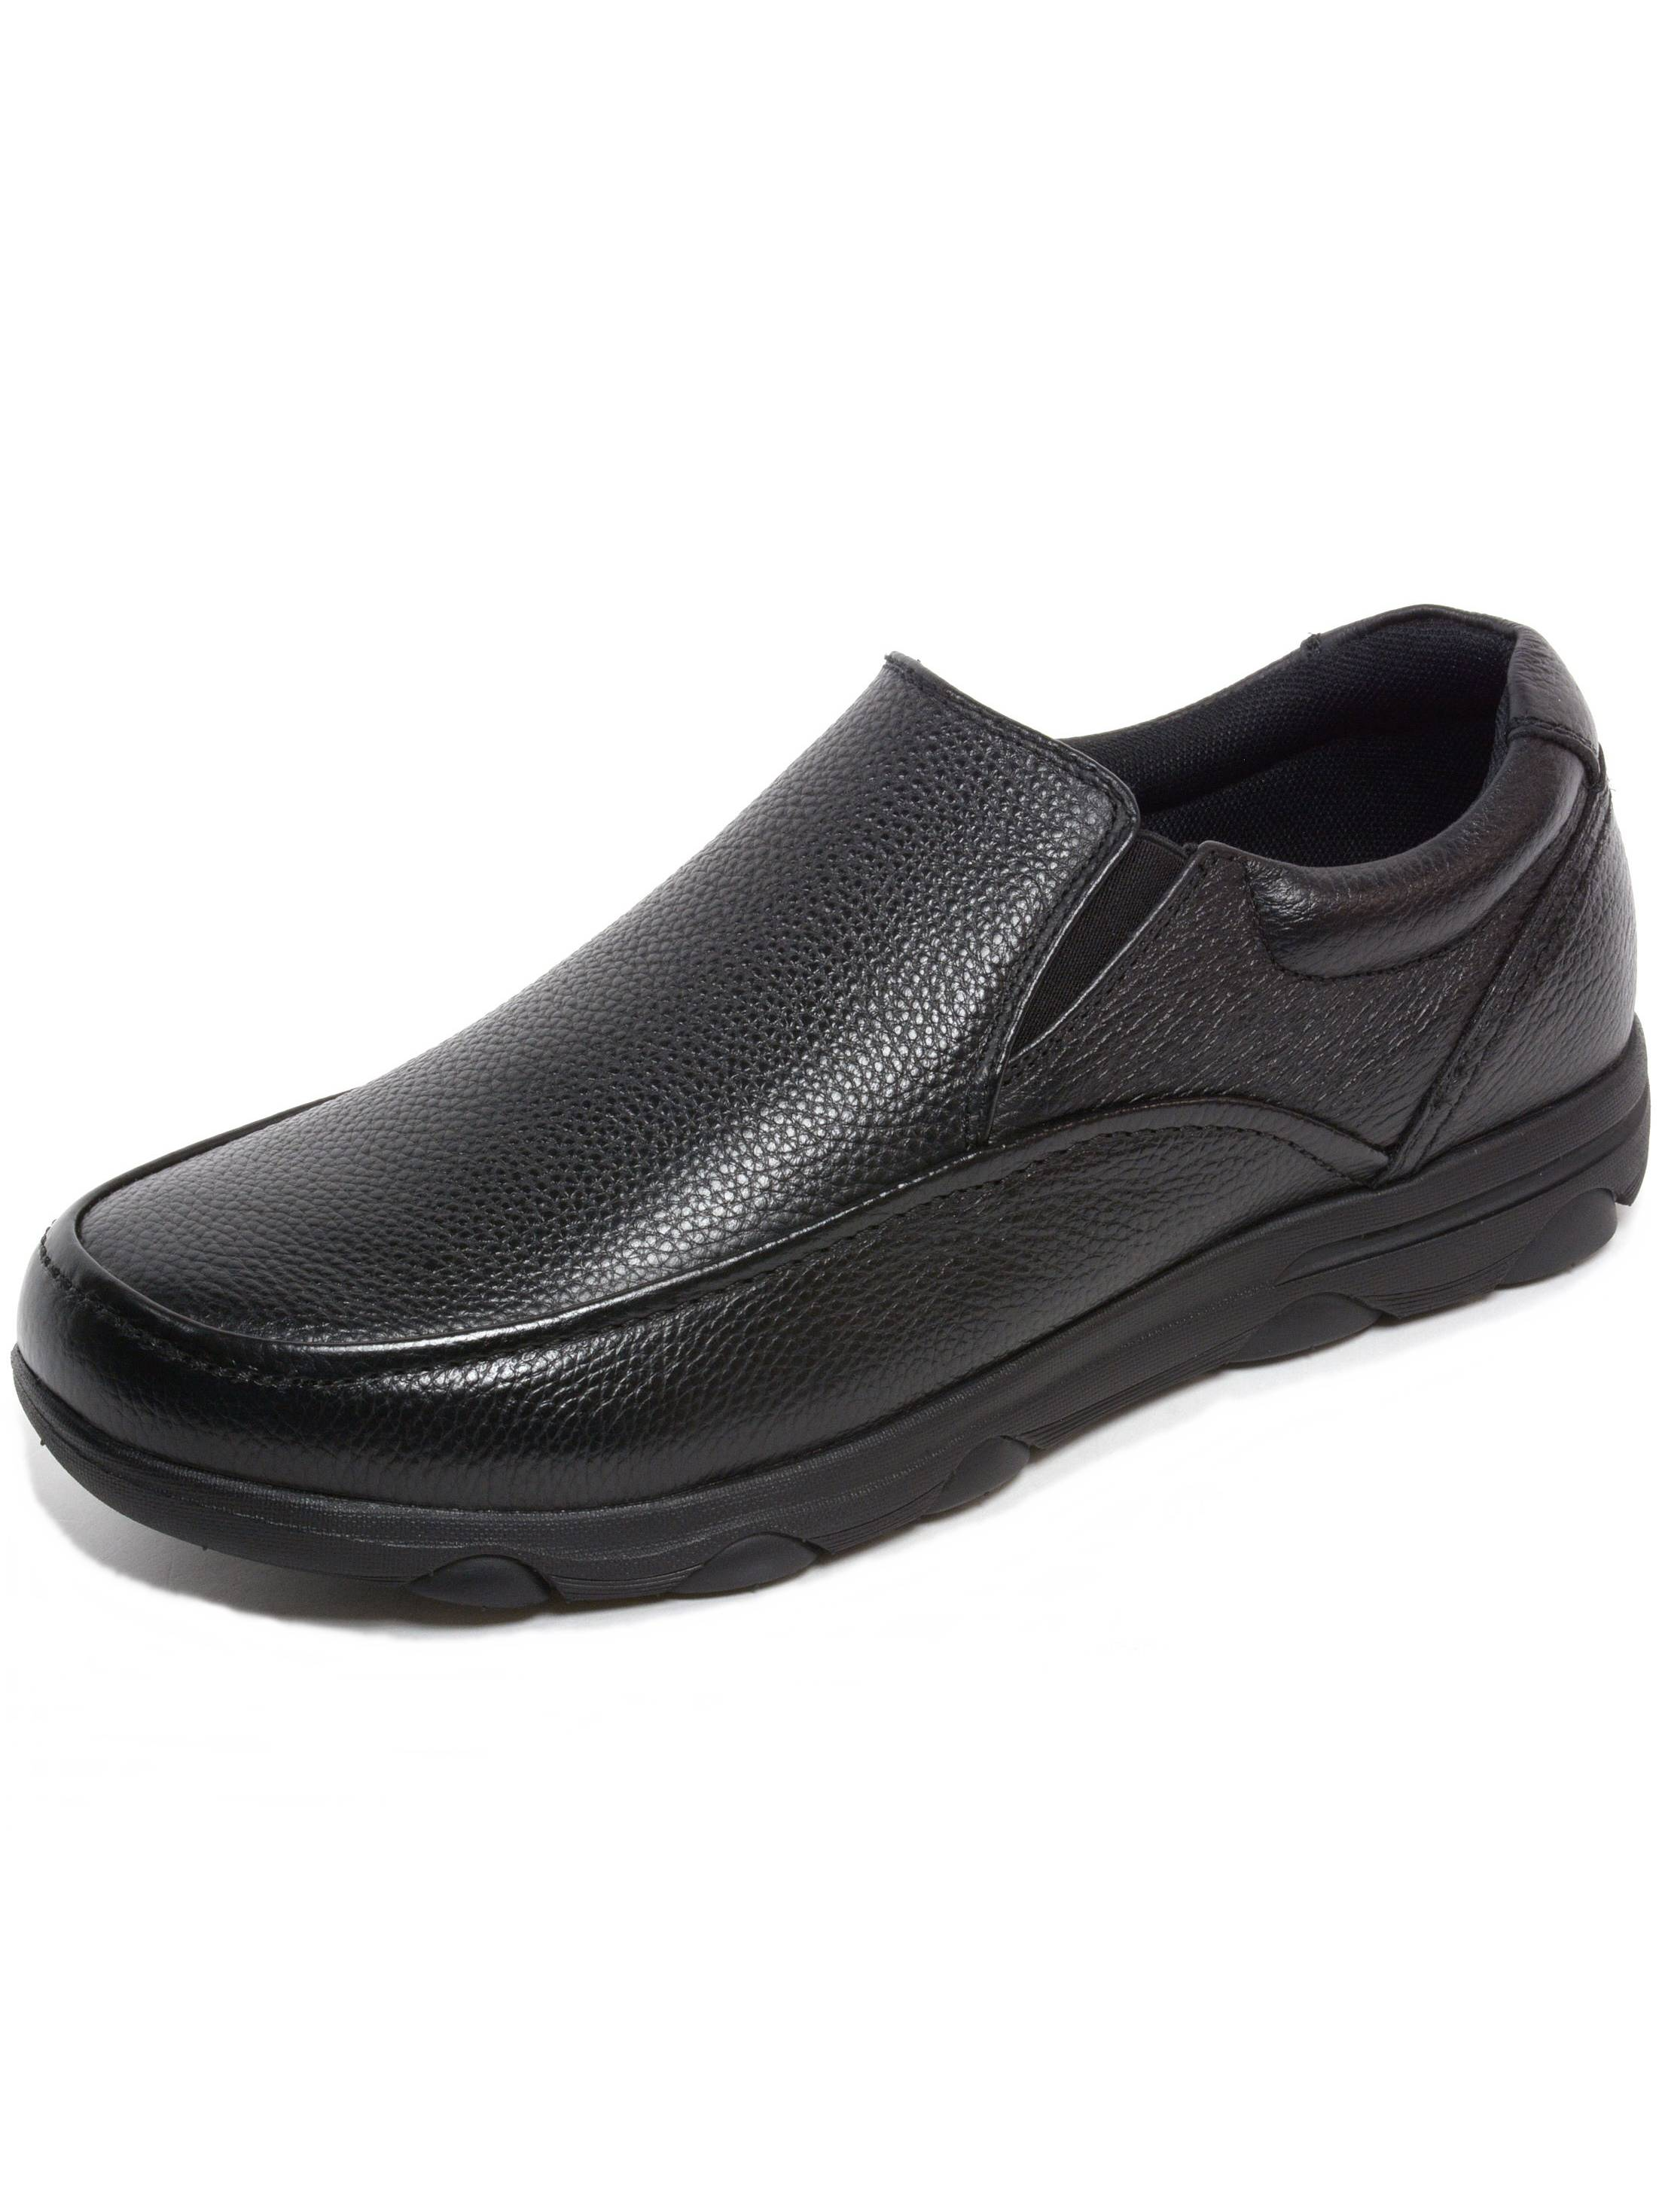 c1ab946fa71 alpine swiss - Alpine Swiss Arbete Mens Work Shoes Slip Resistant Real  Leather Slip-On Loafers - Walmart.com